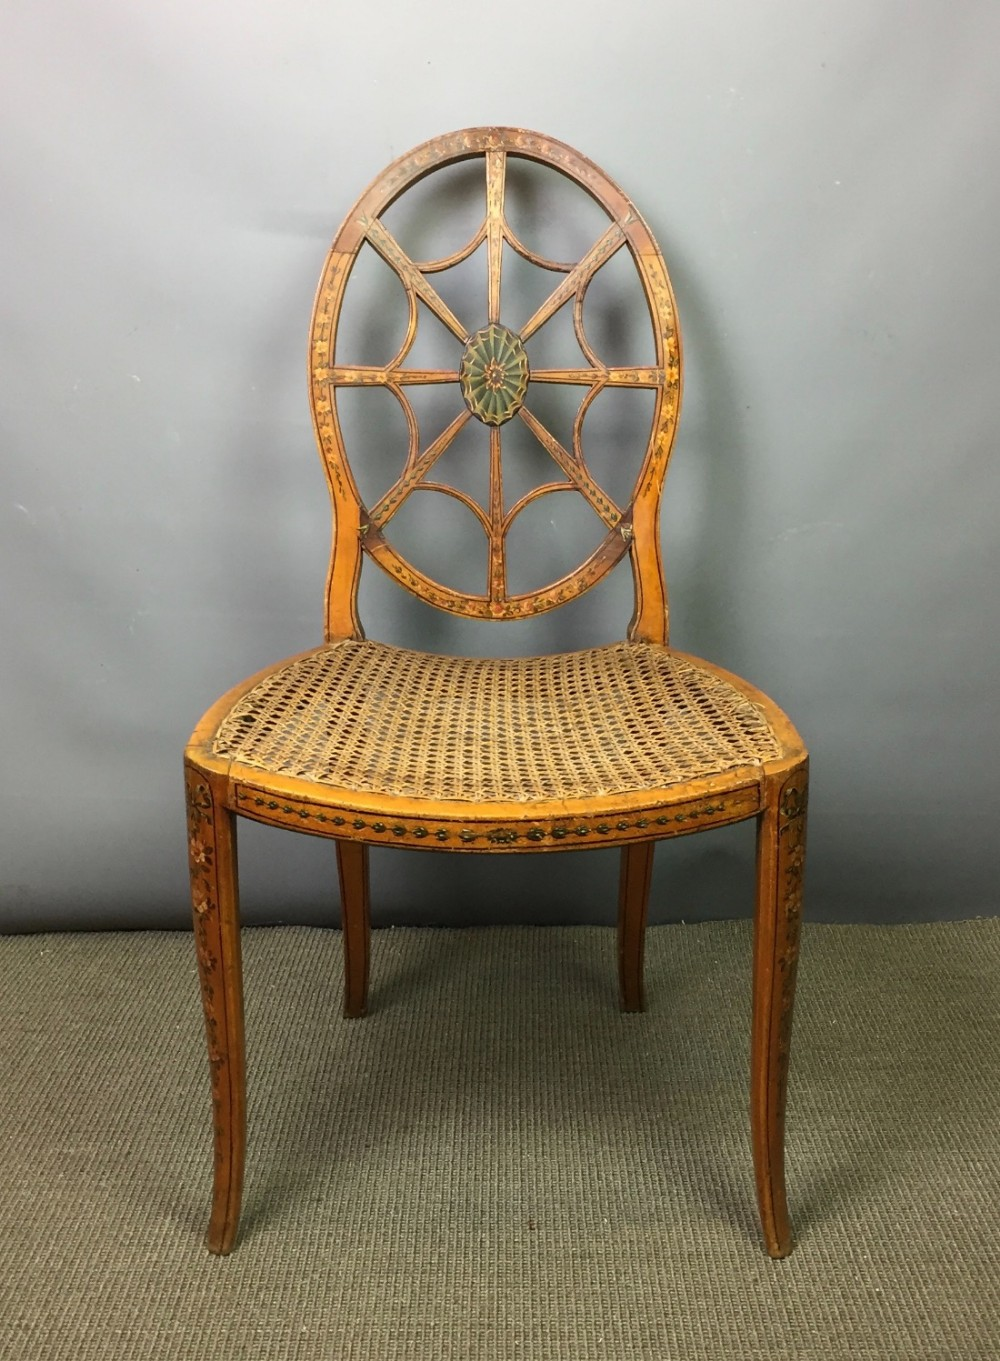 Thomas sheraton chair - Painted Spider S Web Back Chair In The Manner Of Thomas Sheraton